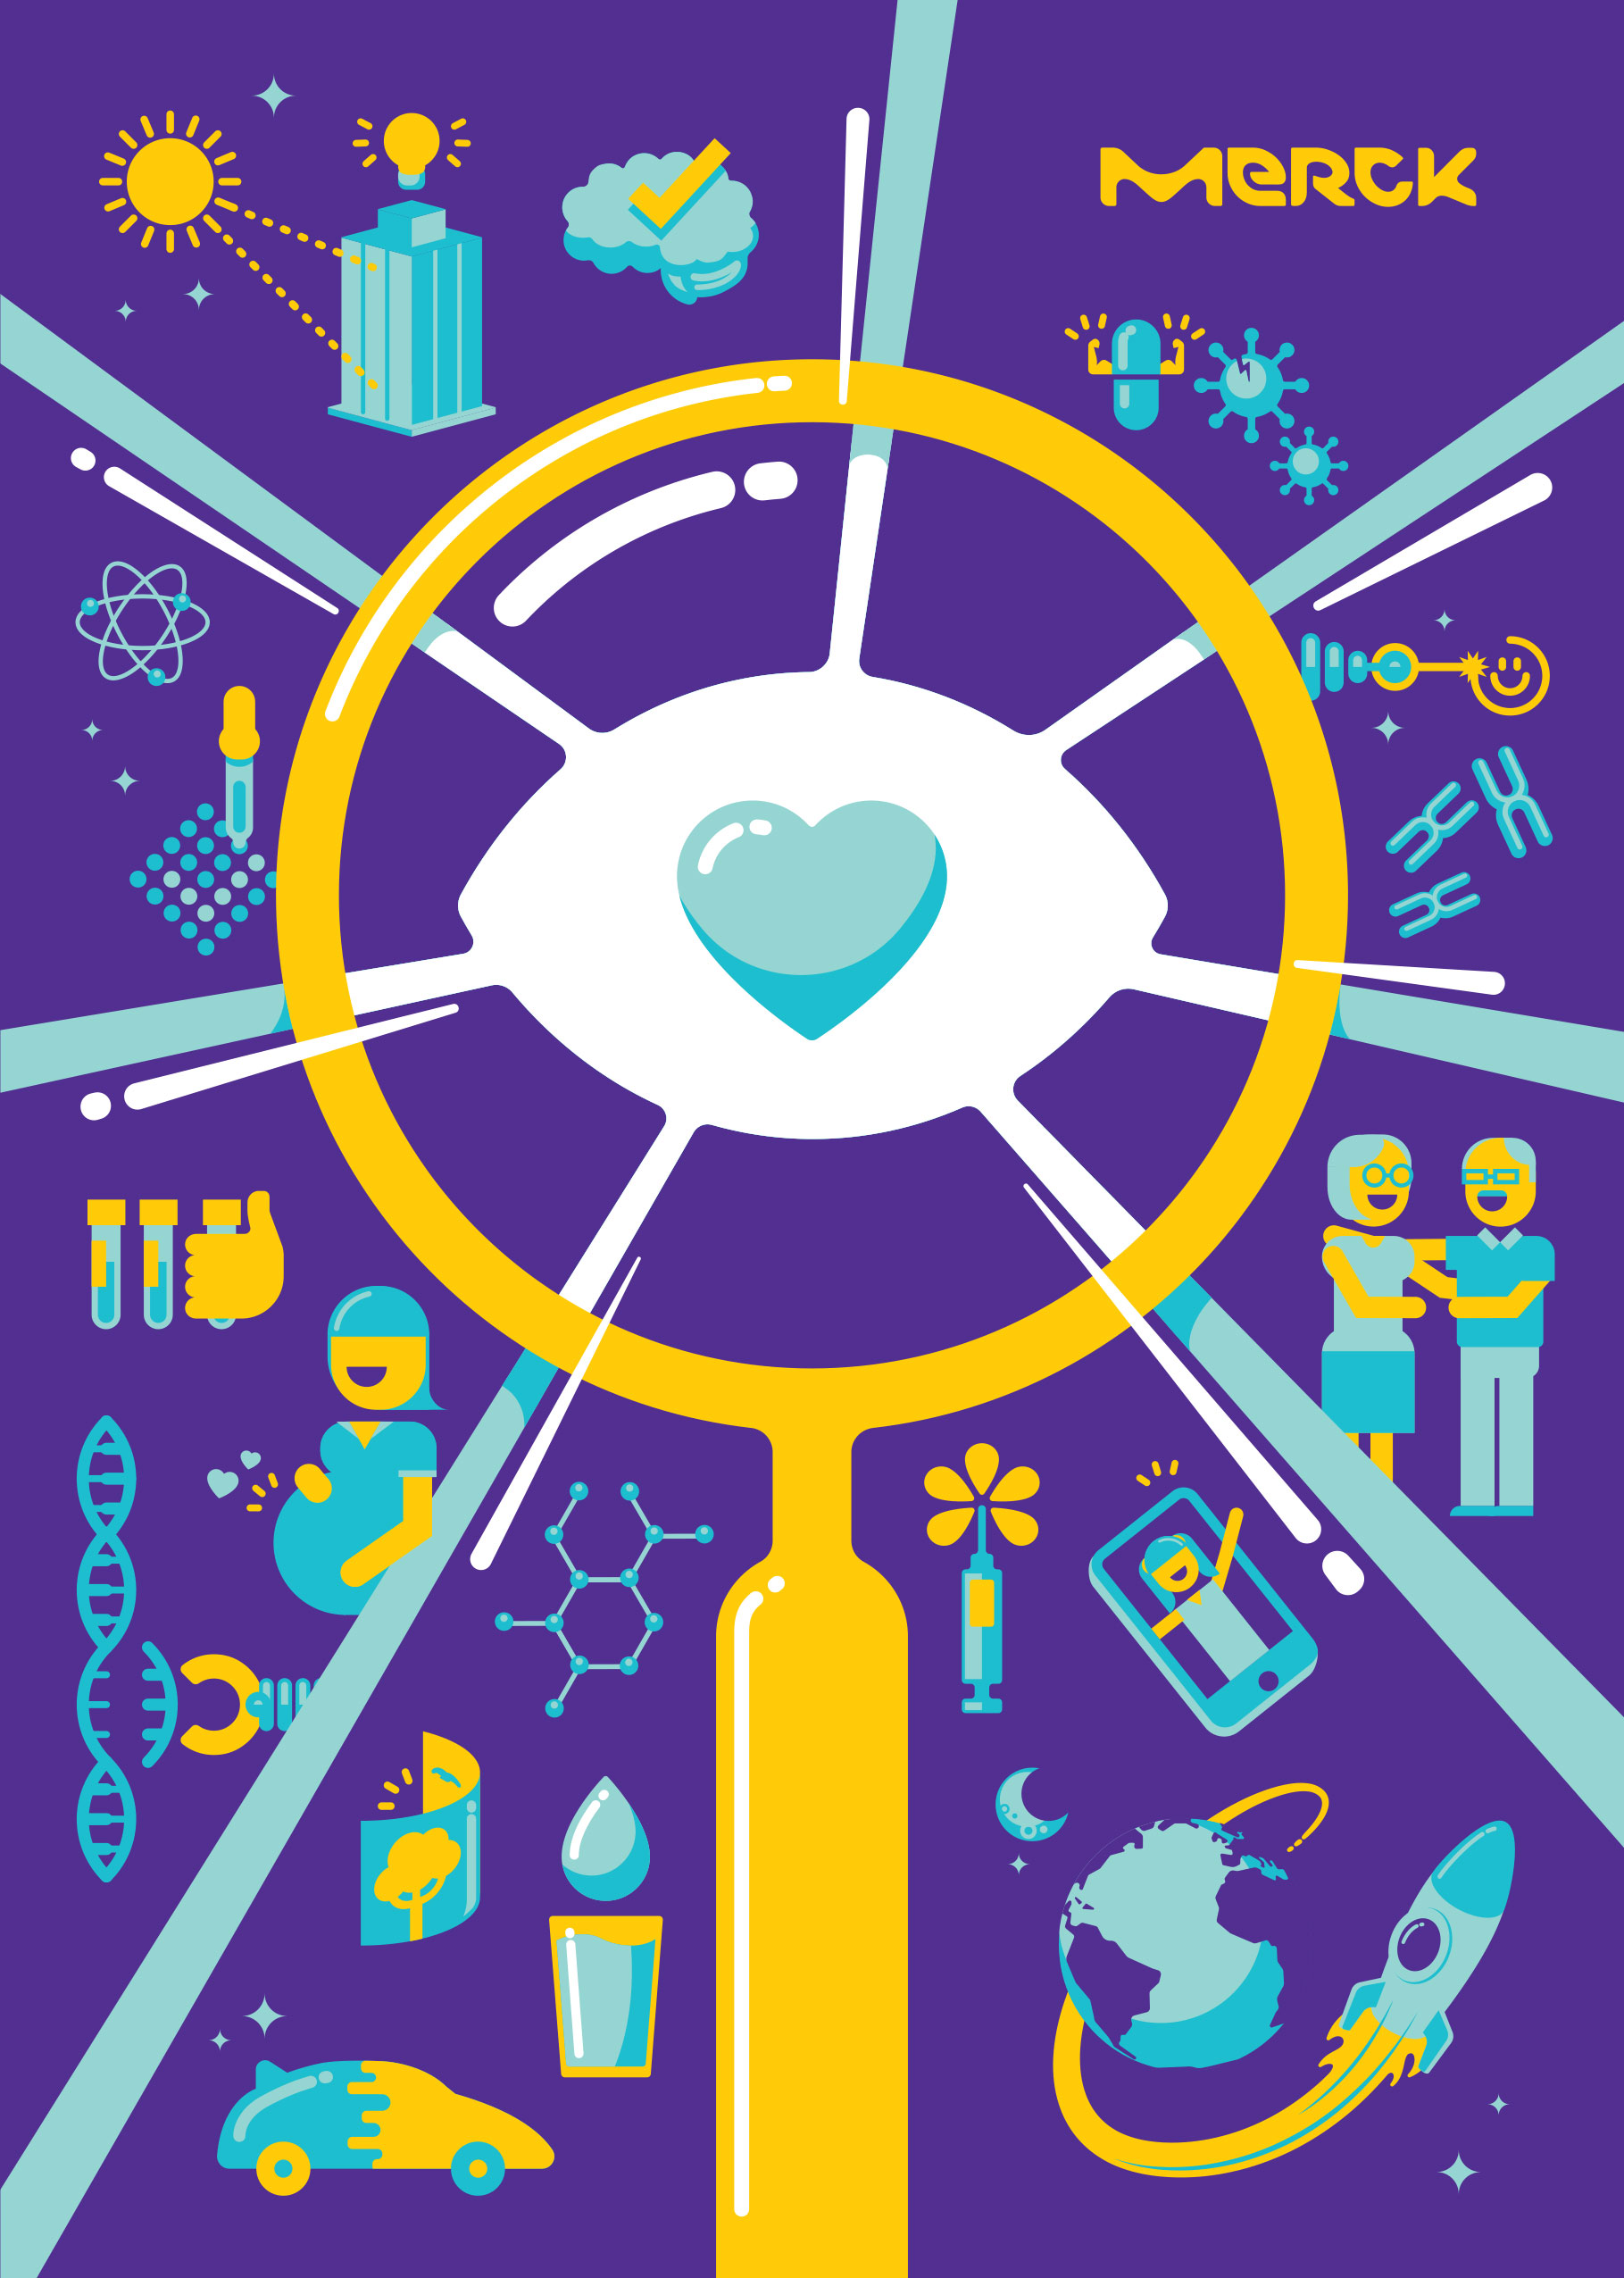 illustration_andre_levy_zhion_vector_flat_icons_magnifying_event_collaborative_merck_manifesto.jpg